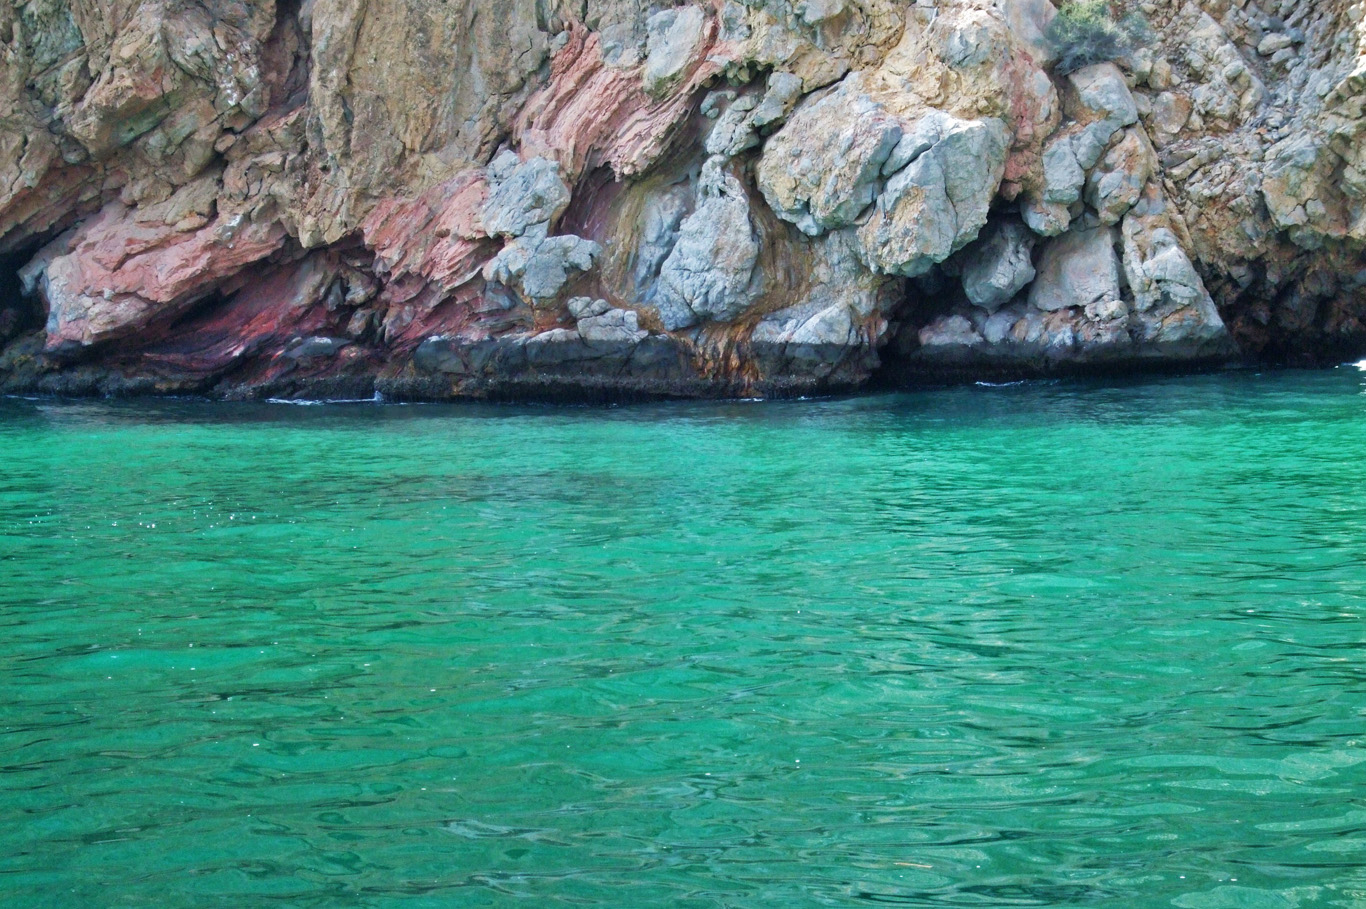 Turquoise waters in the Gulf of Oma